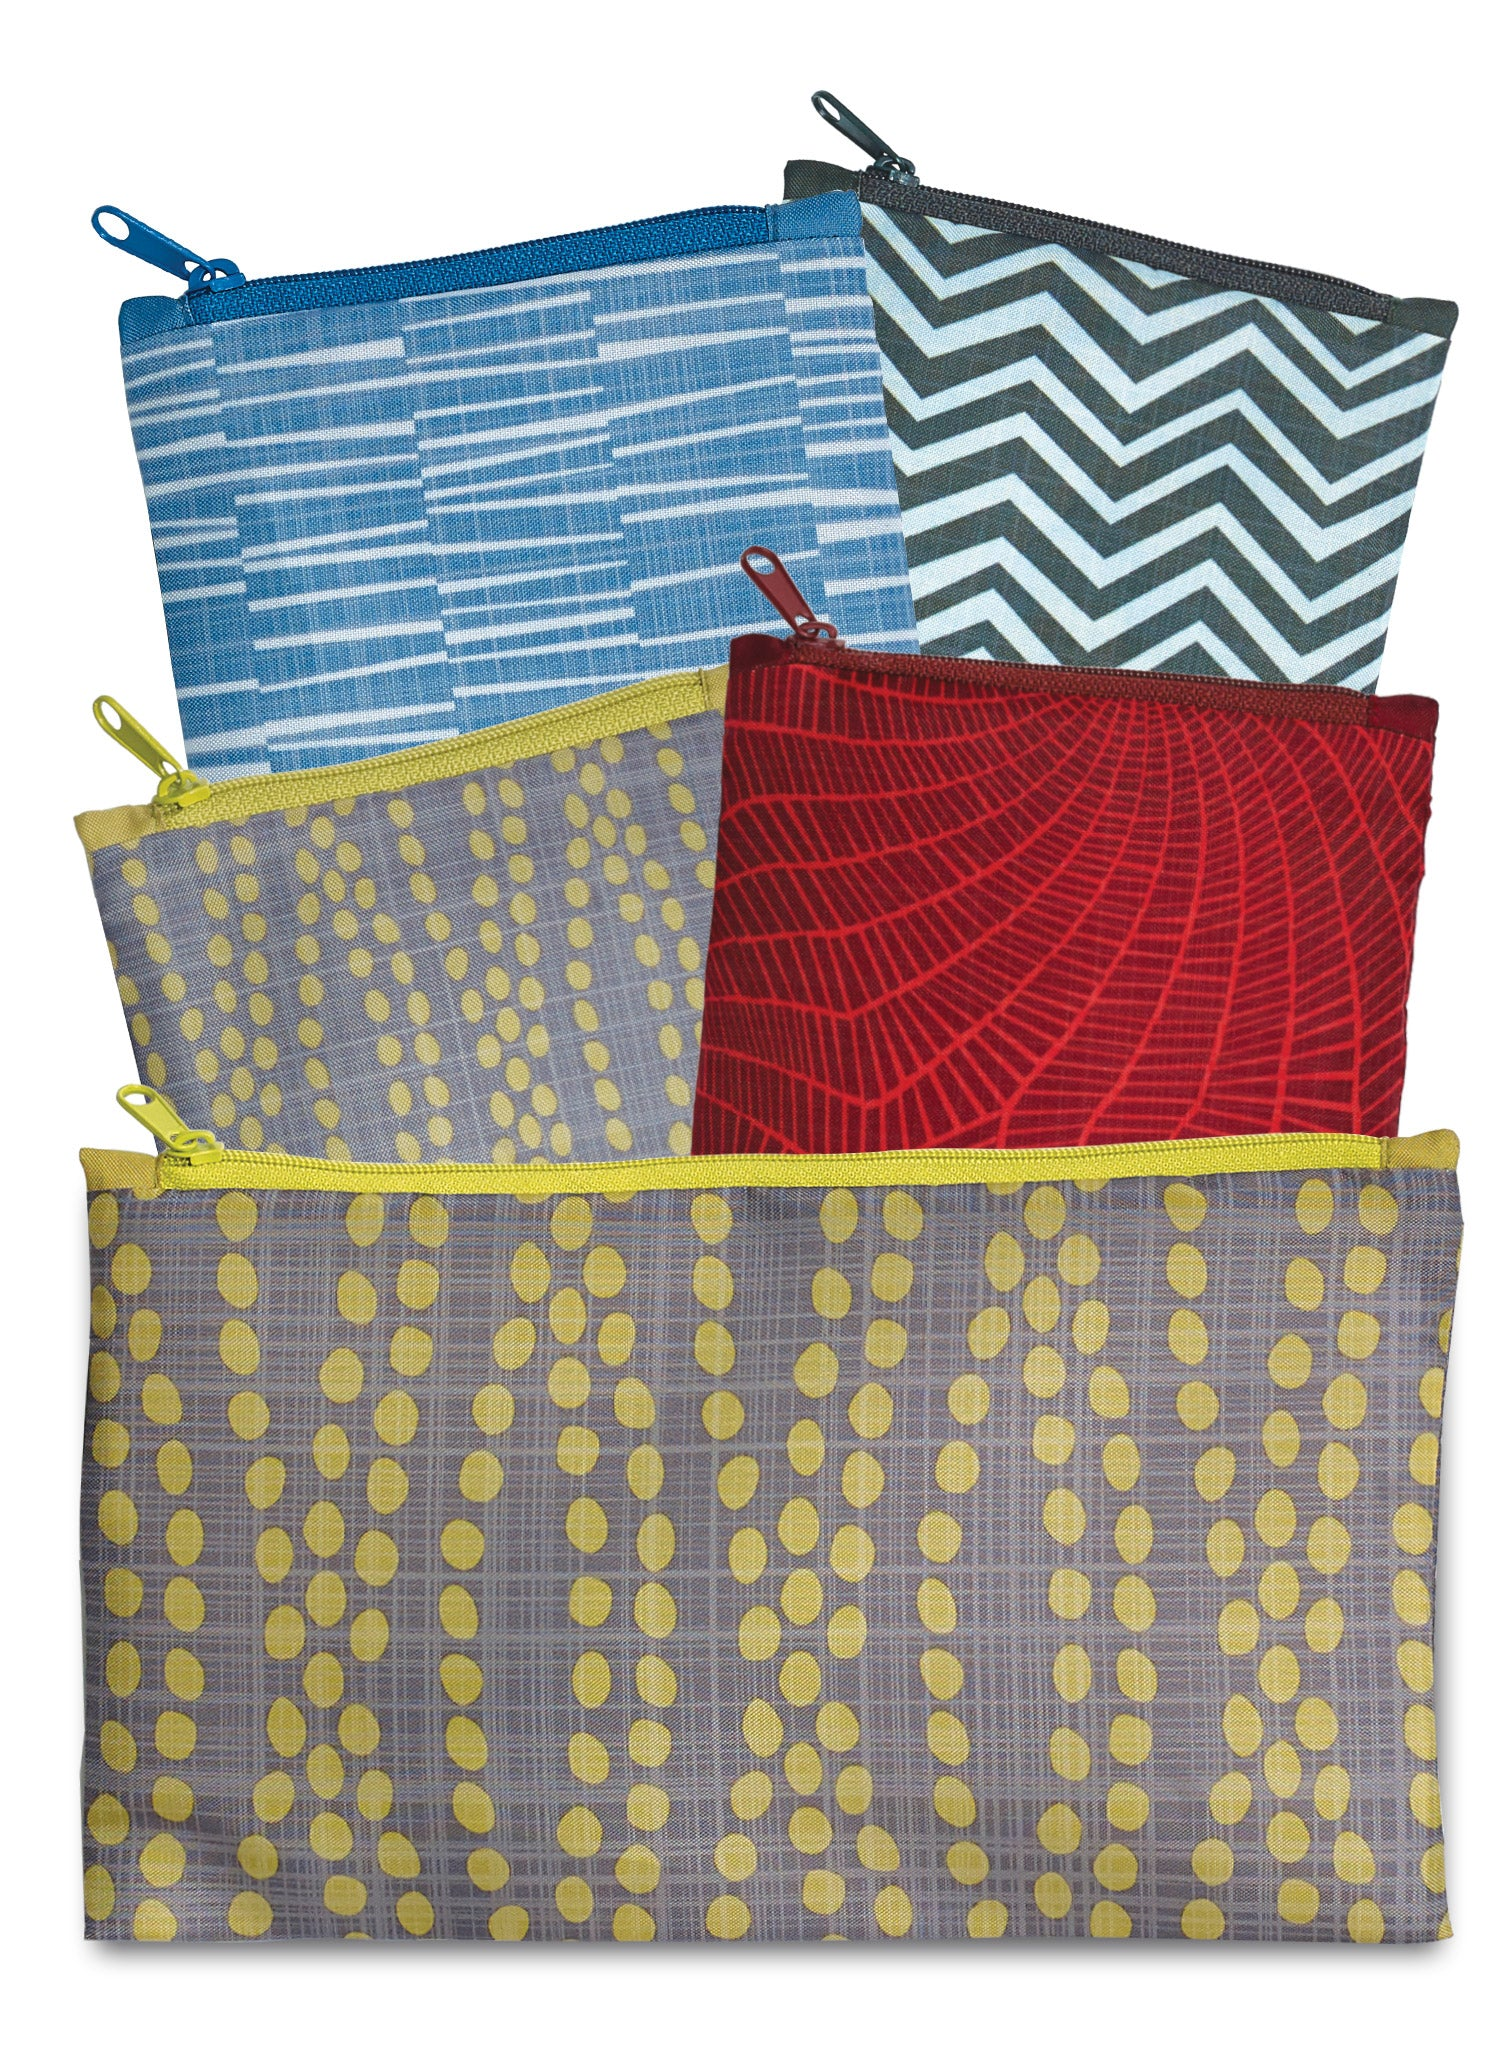 LOQI Elements Collection Pouch, Set of 4 Reusable Bags